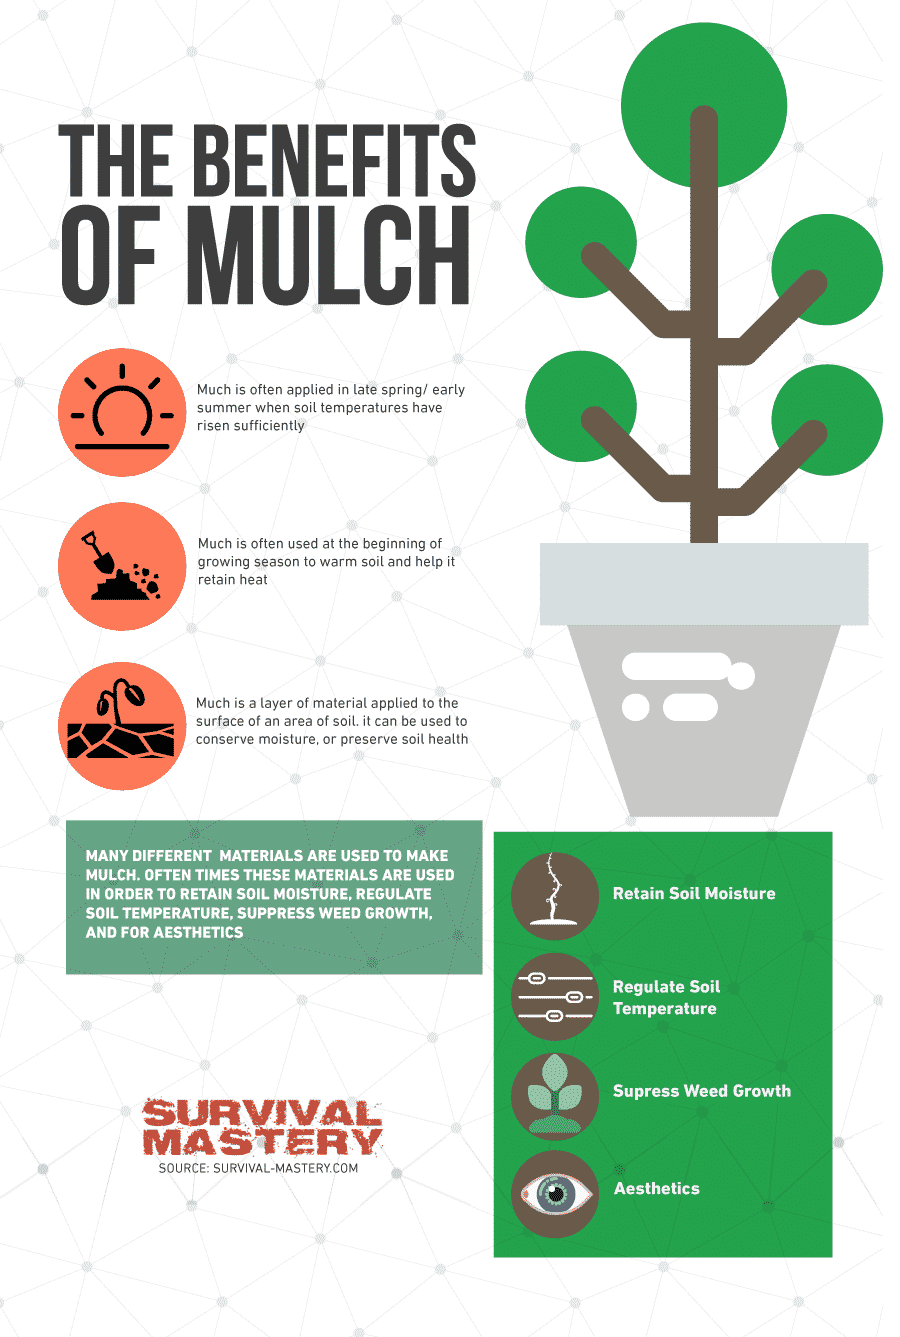 Benefits of mulch infographic